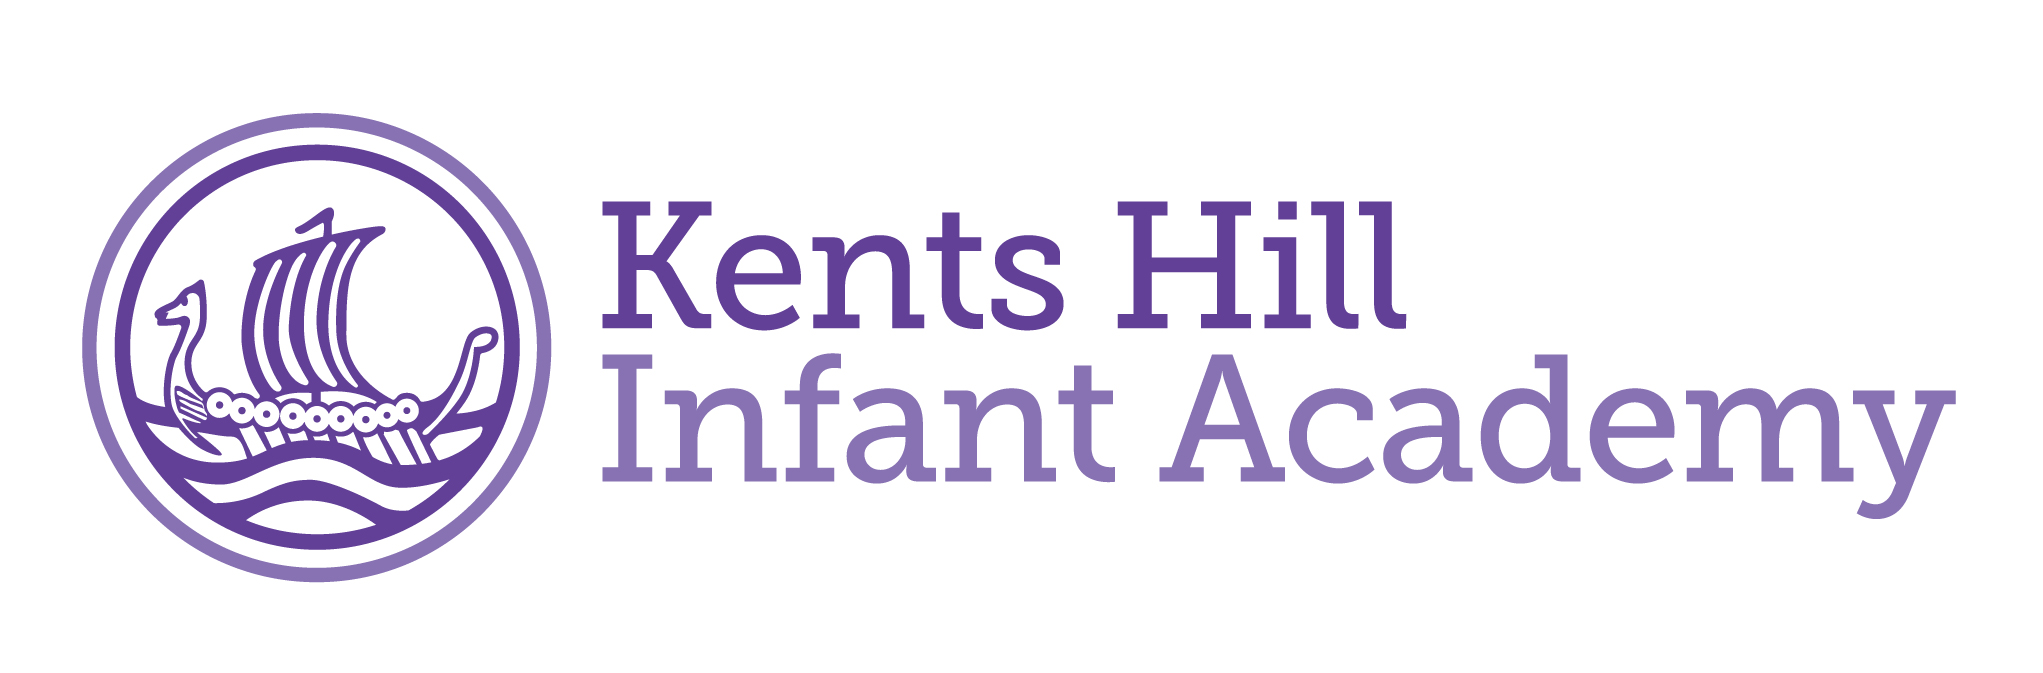 Kents Hill Infant Academy logo final-01